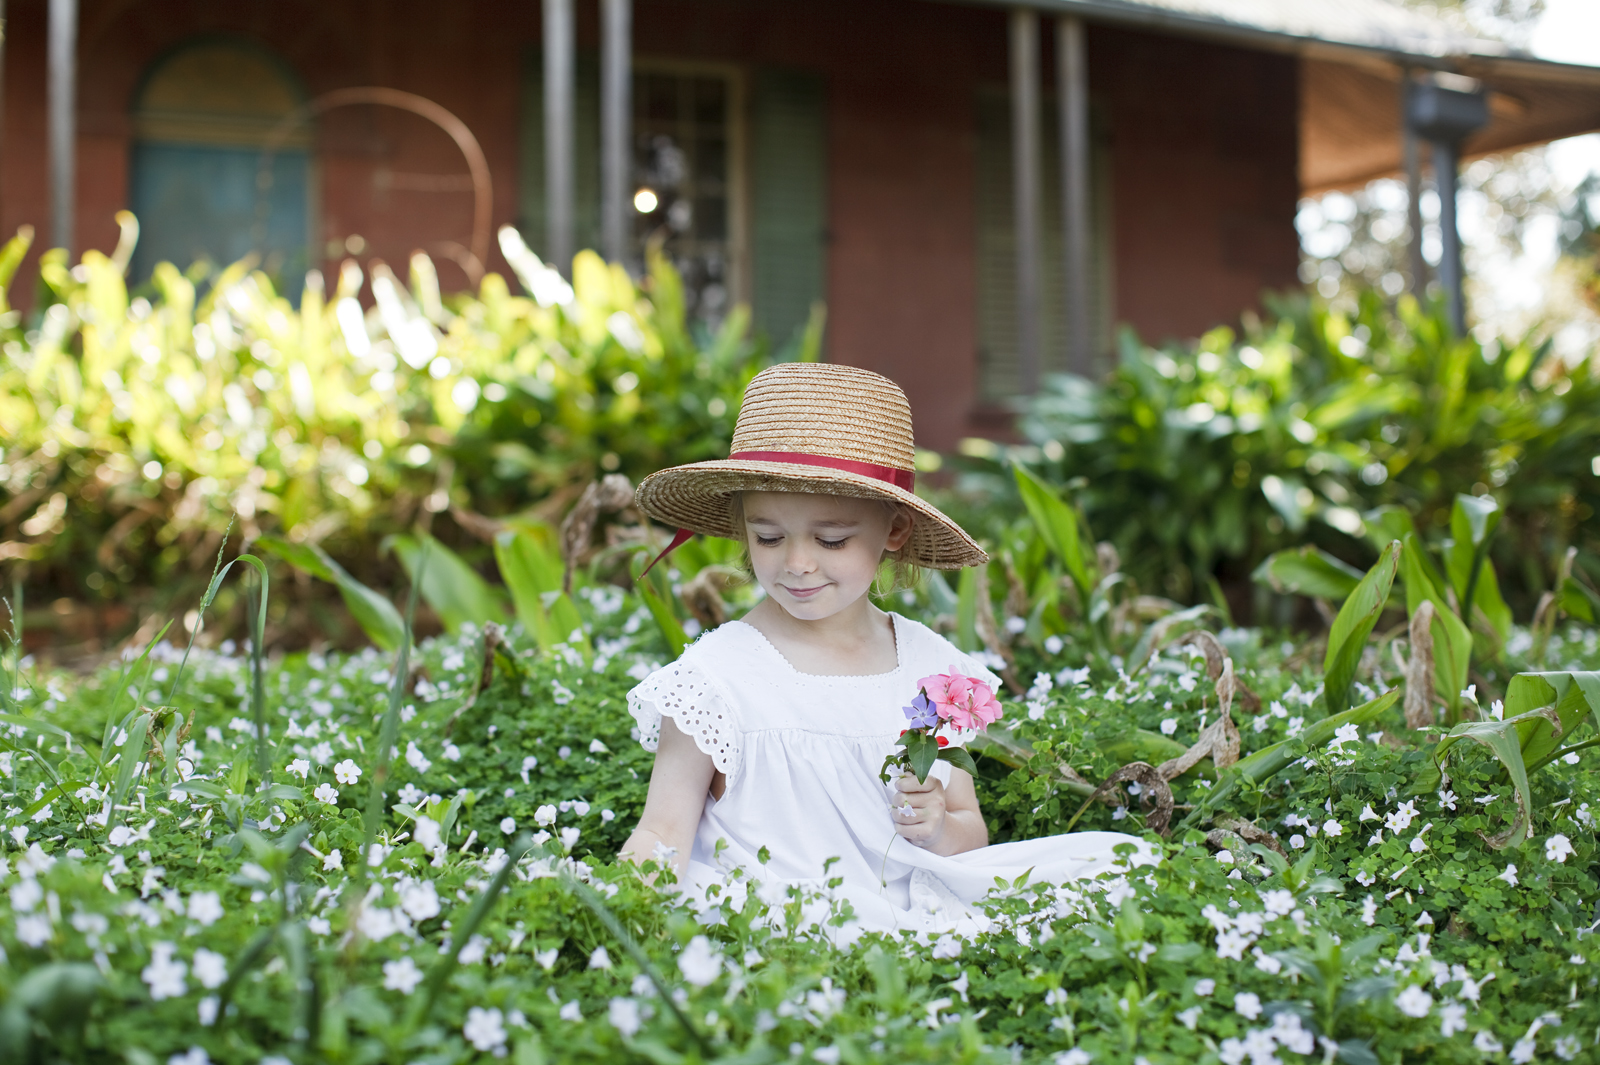 Small girl in garden bed with flowers outside main house.